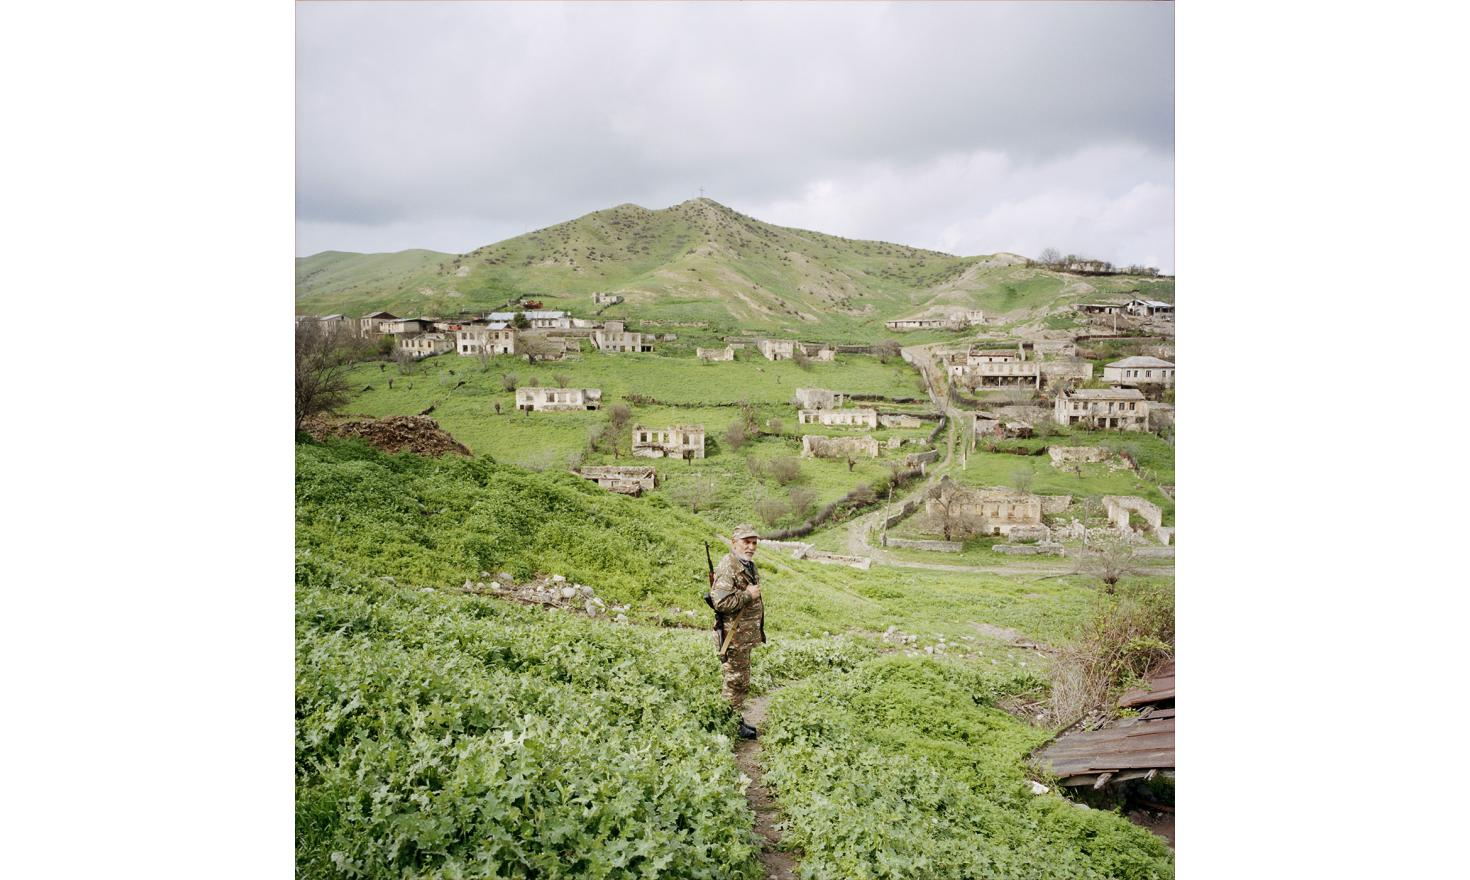 A volunteer native from Talish came back in his village after the april war to defend it. Talish is one of the villages which was bombed by azerbaijan army.